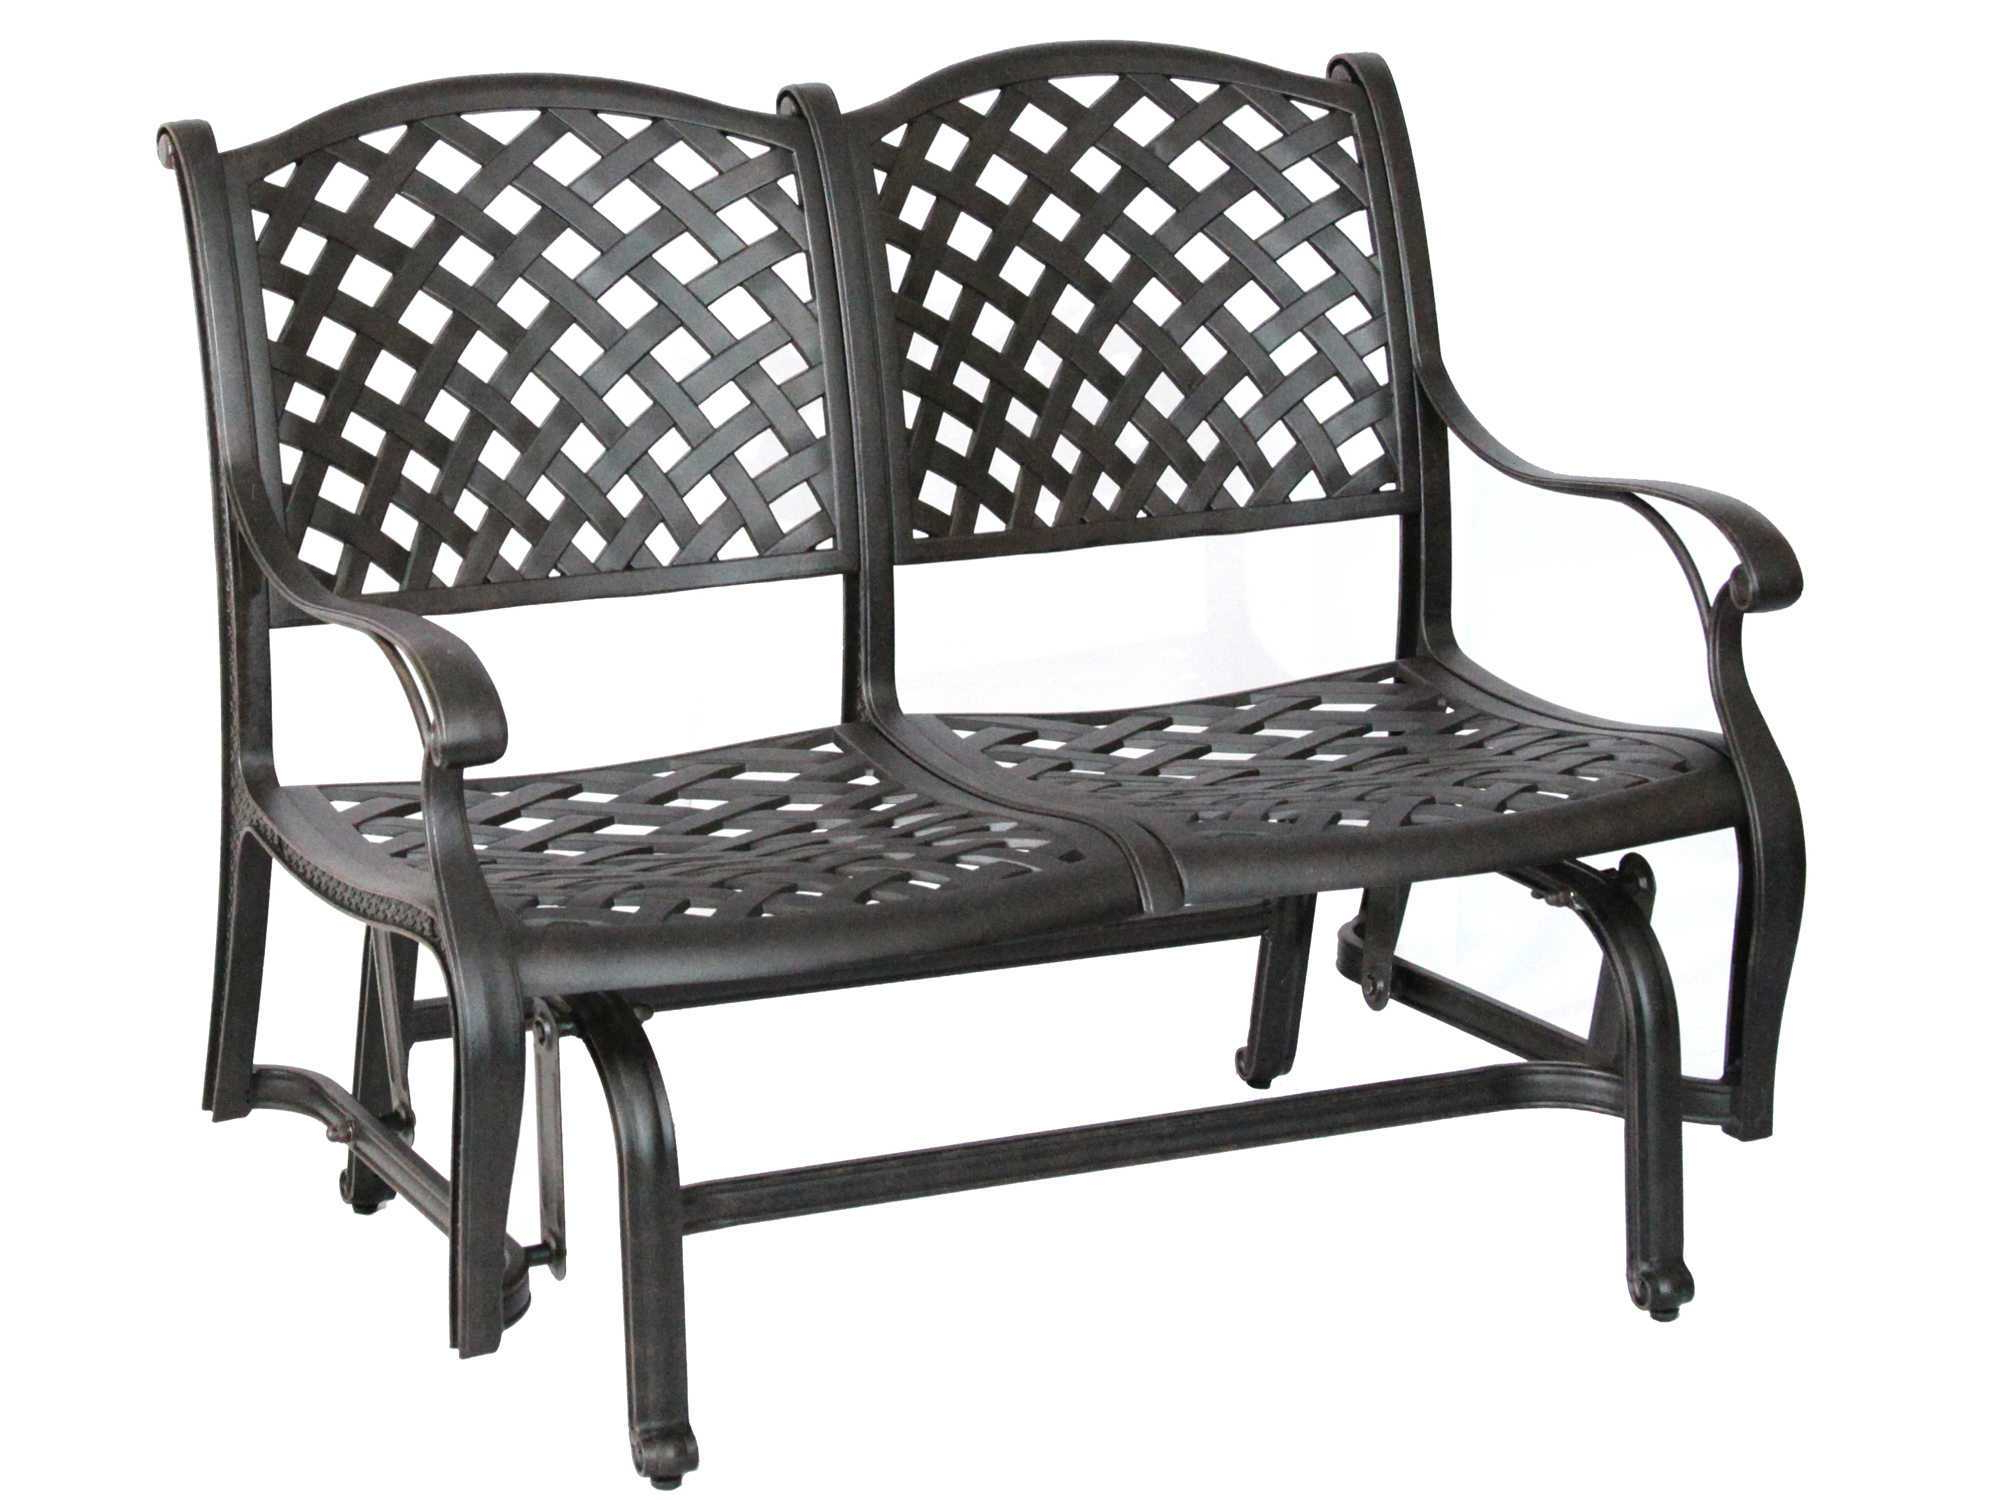 2019 Glider Benches With Cushions Intended For Darlee Outdoor Living Standard Nassau Cast Aluminum Antique (View 1 of 30)